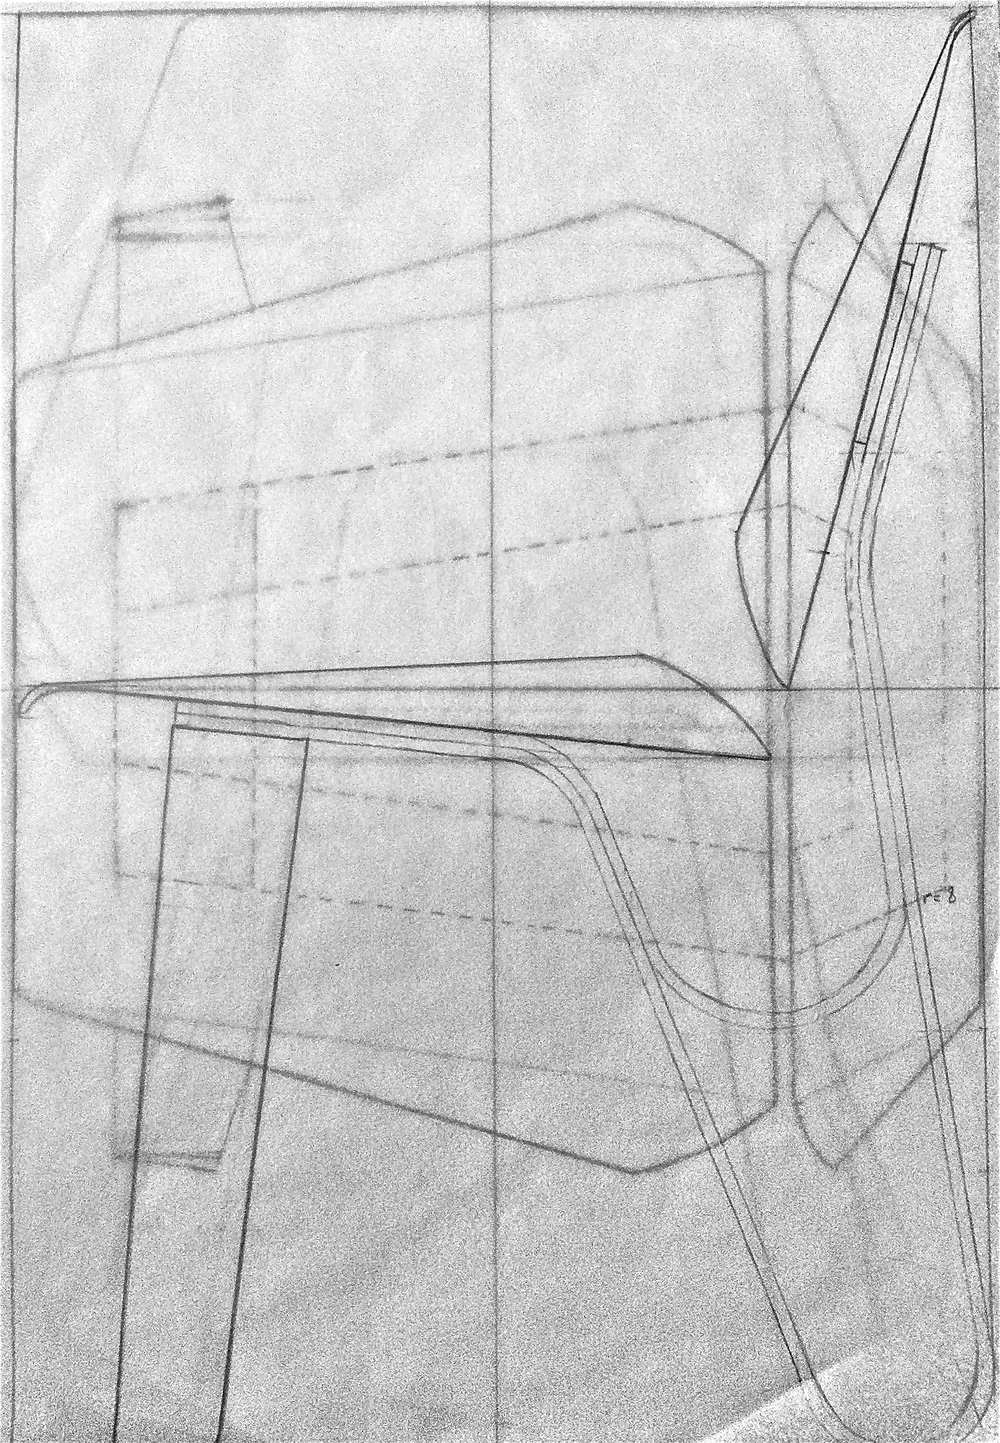 Full scale technical drafting of side, top and front view.